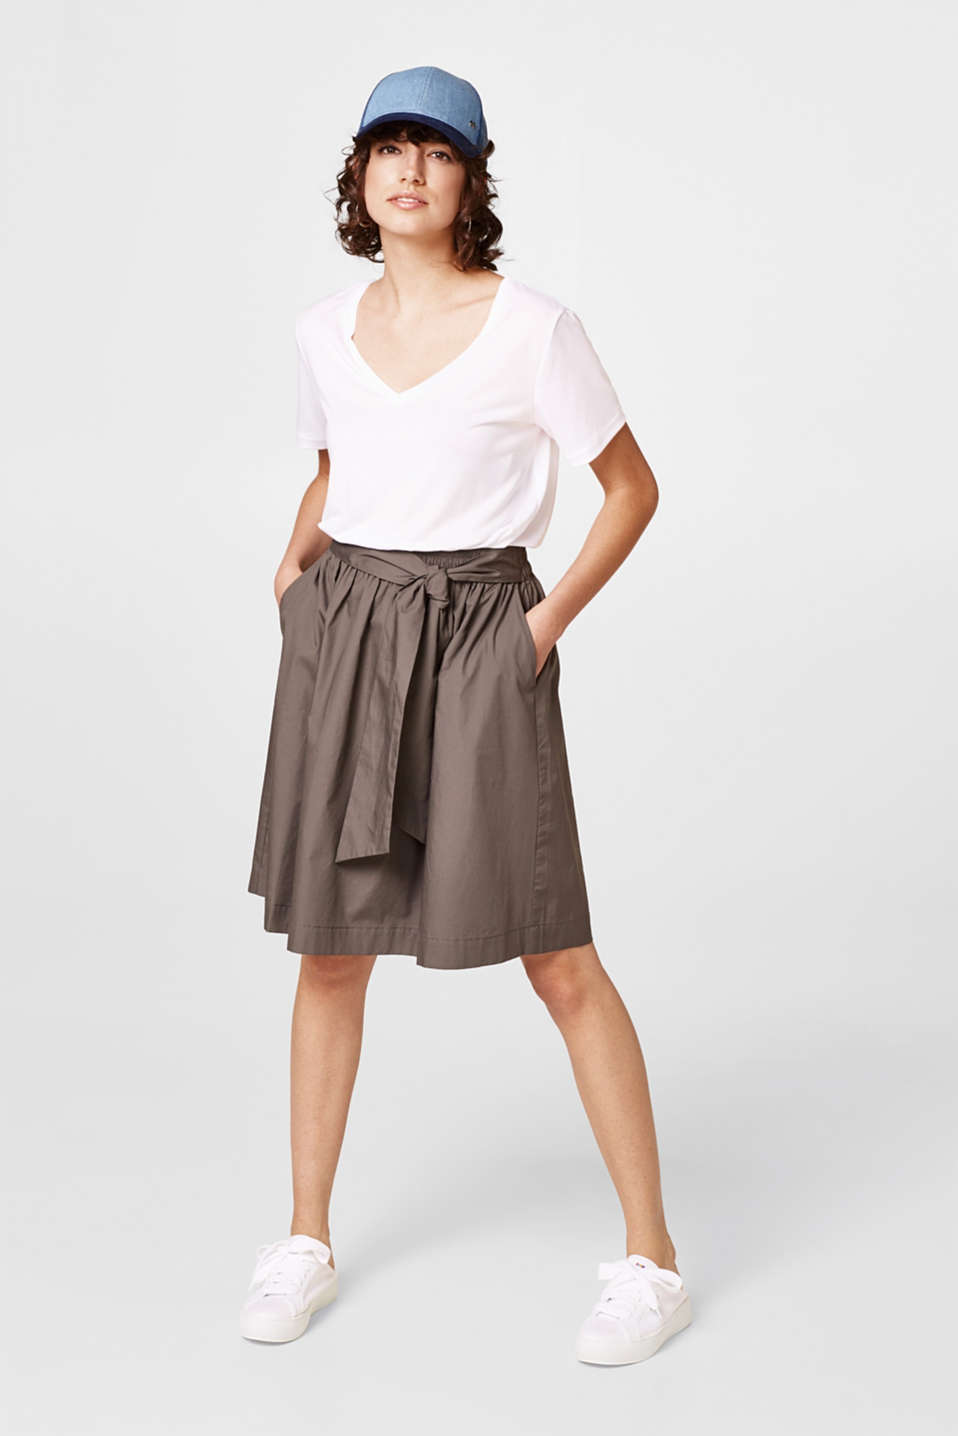 Flared poplin skirt + smocked waistband